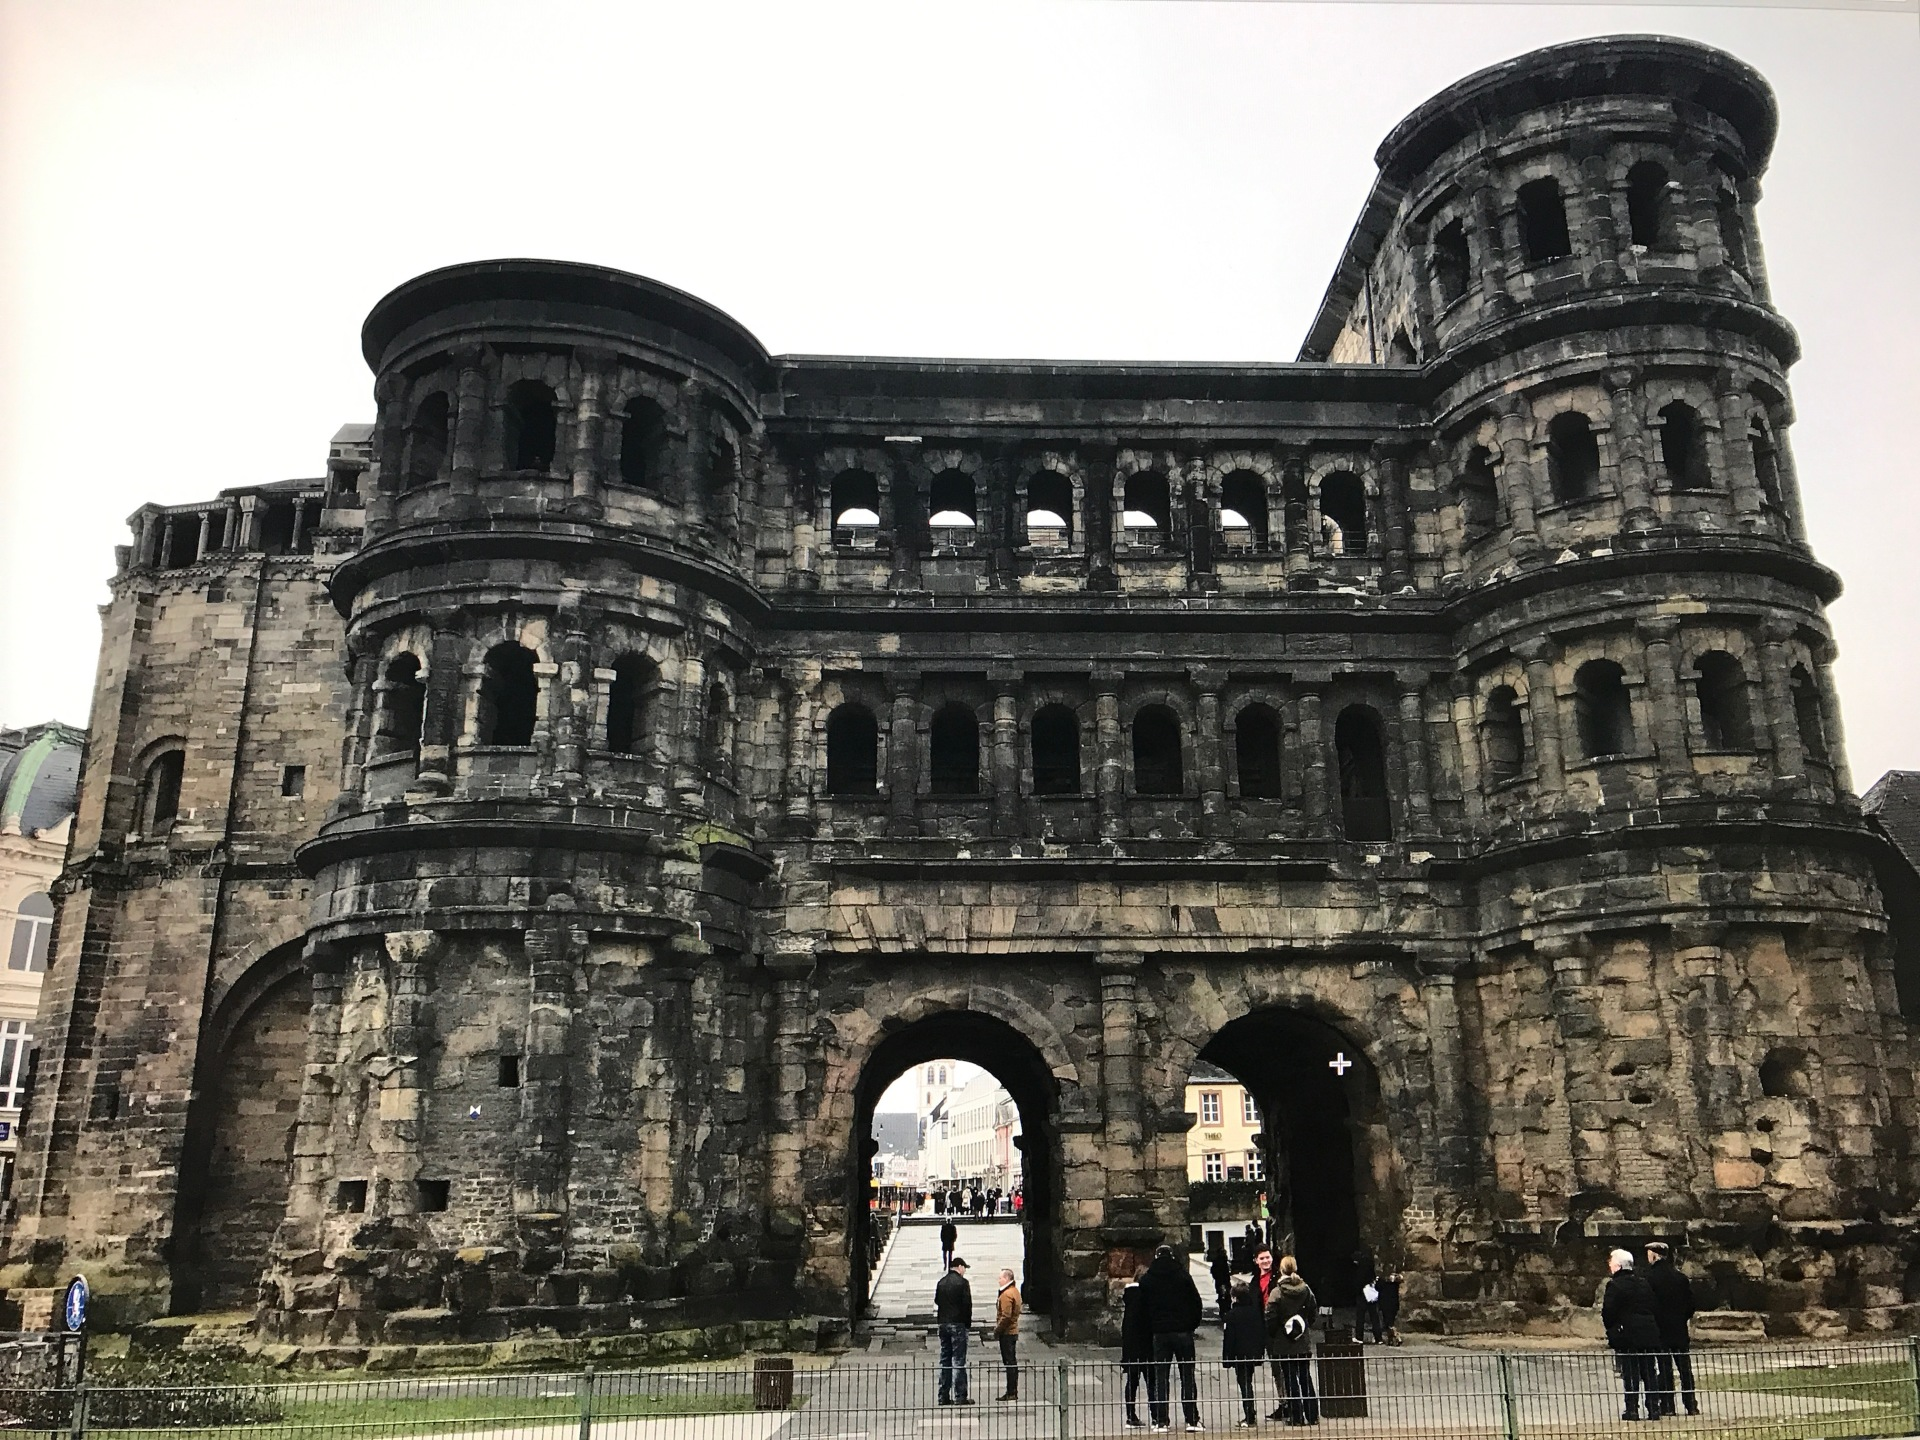 The Porta Nigra, the main symbol of Trier standing since the Romans